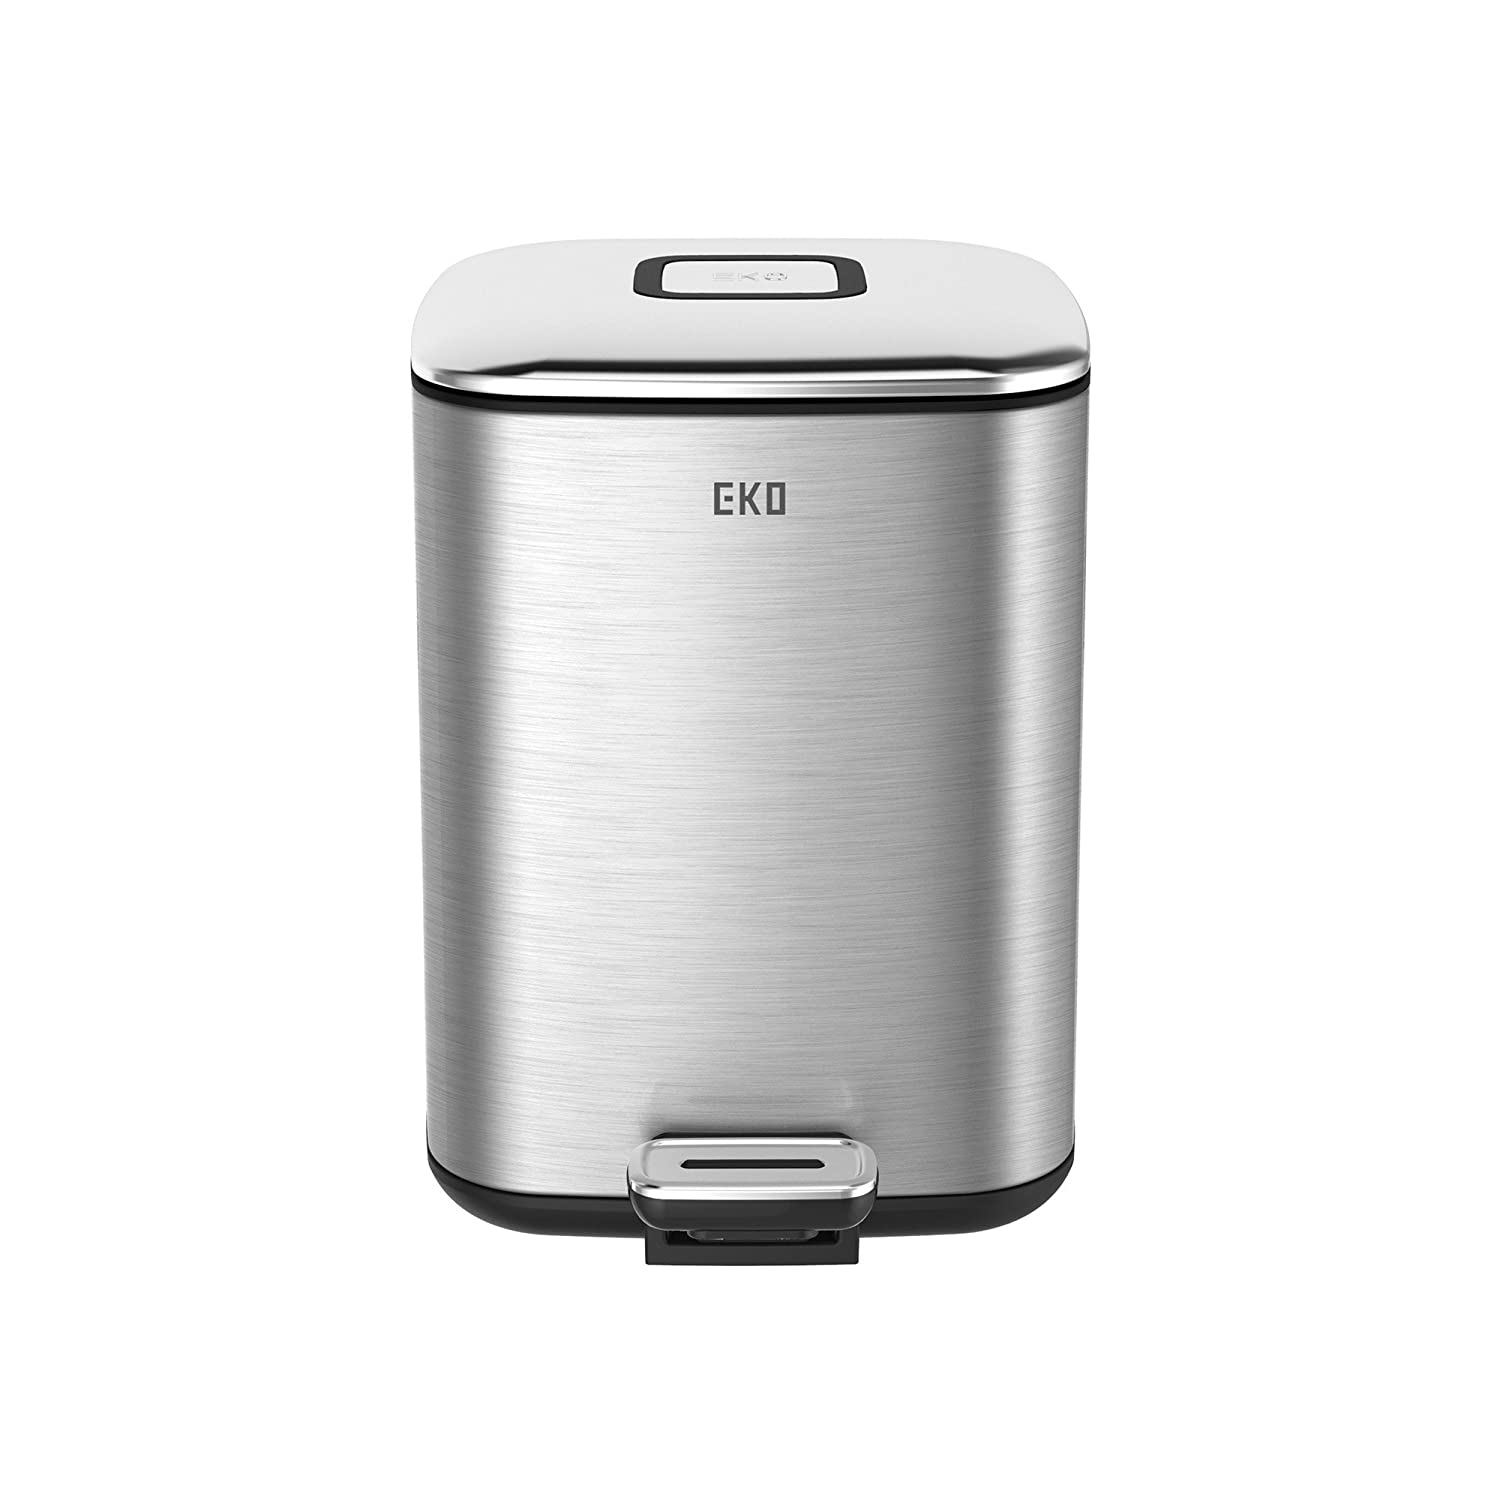 eko small square metal step trash can with lid 6